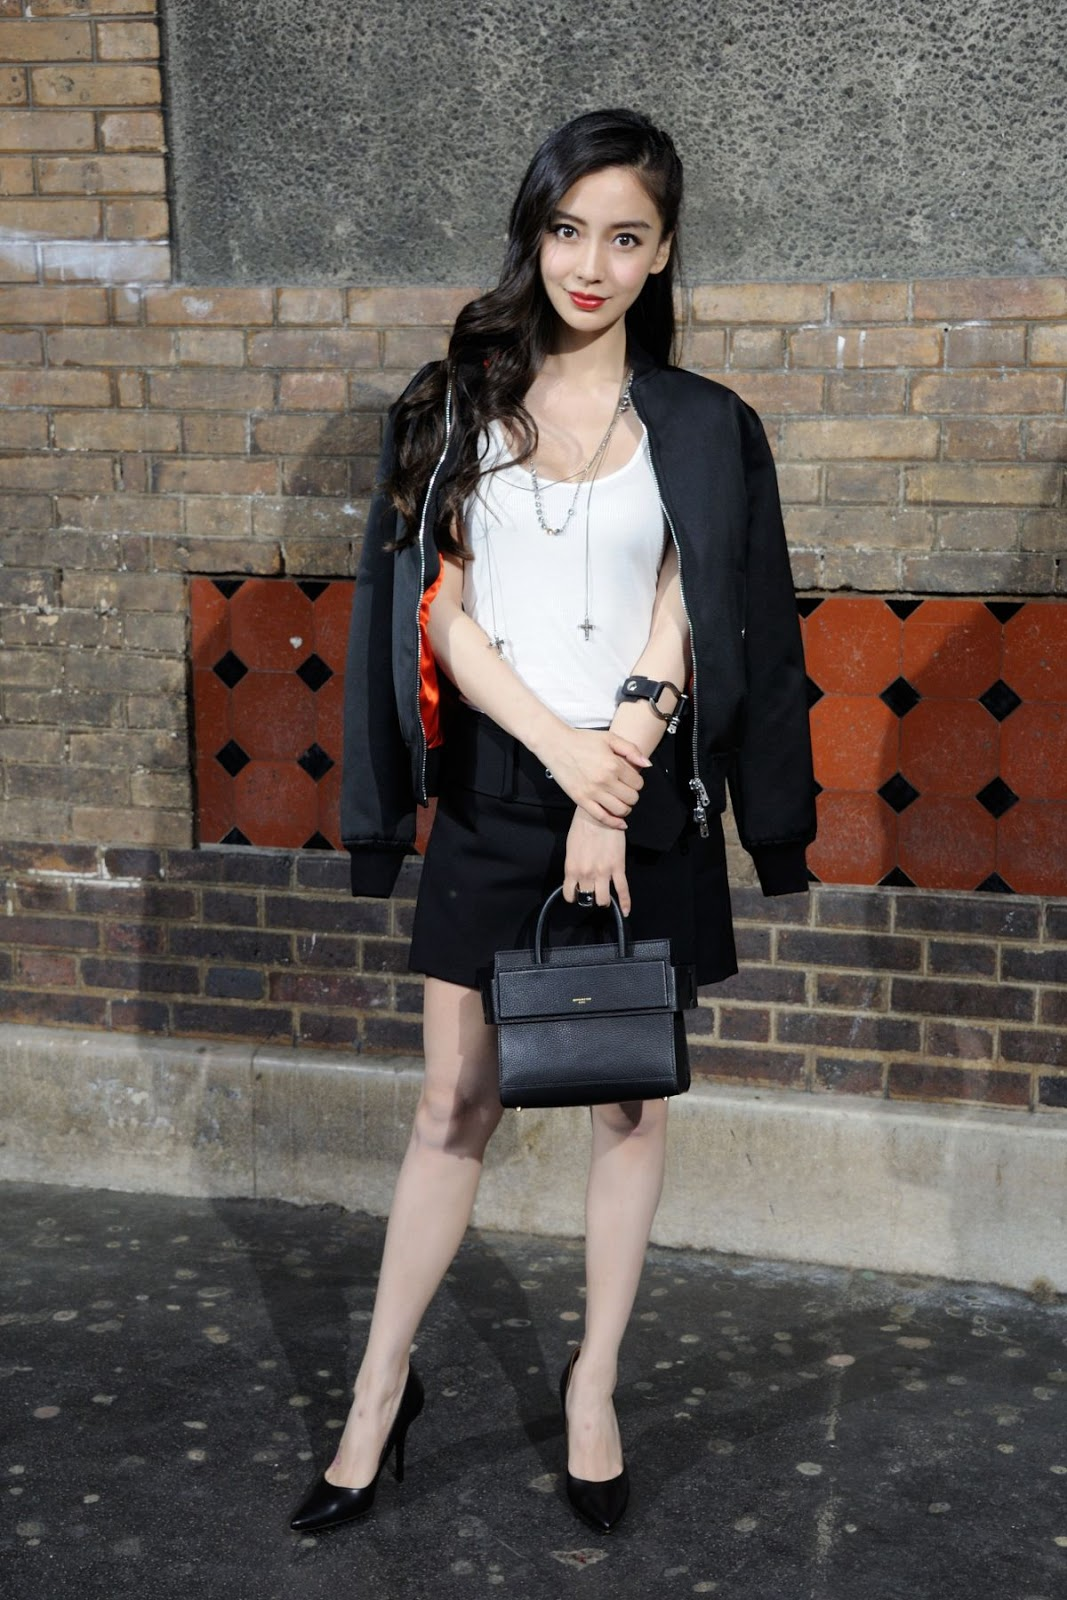 'Independence Day: Resurgence' actress Angelababy at Gvenchy Fashion Show in Paris